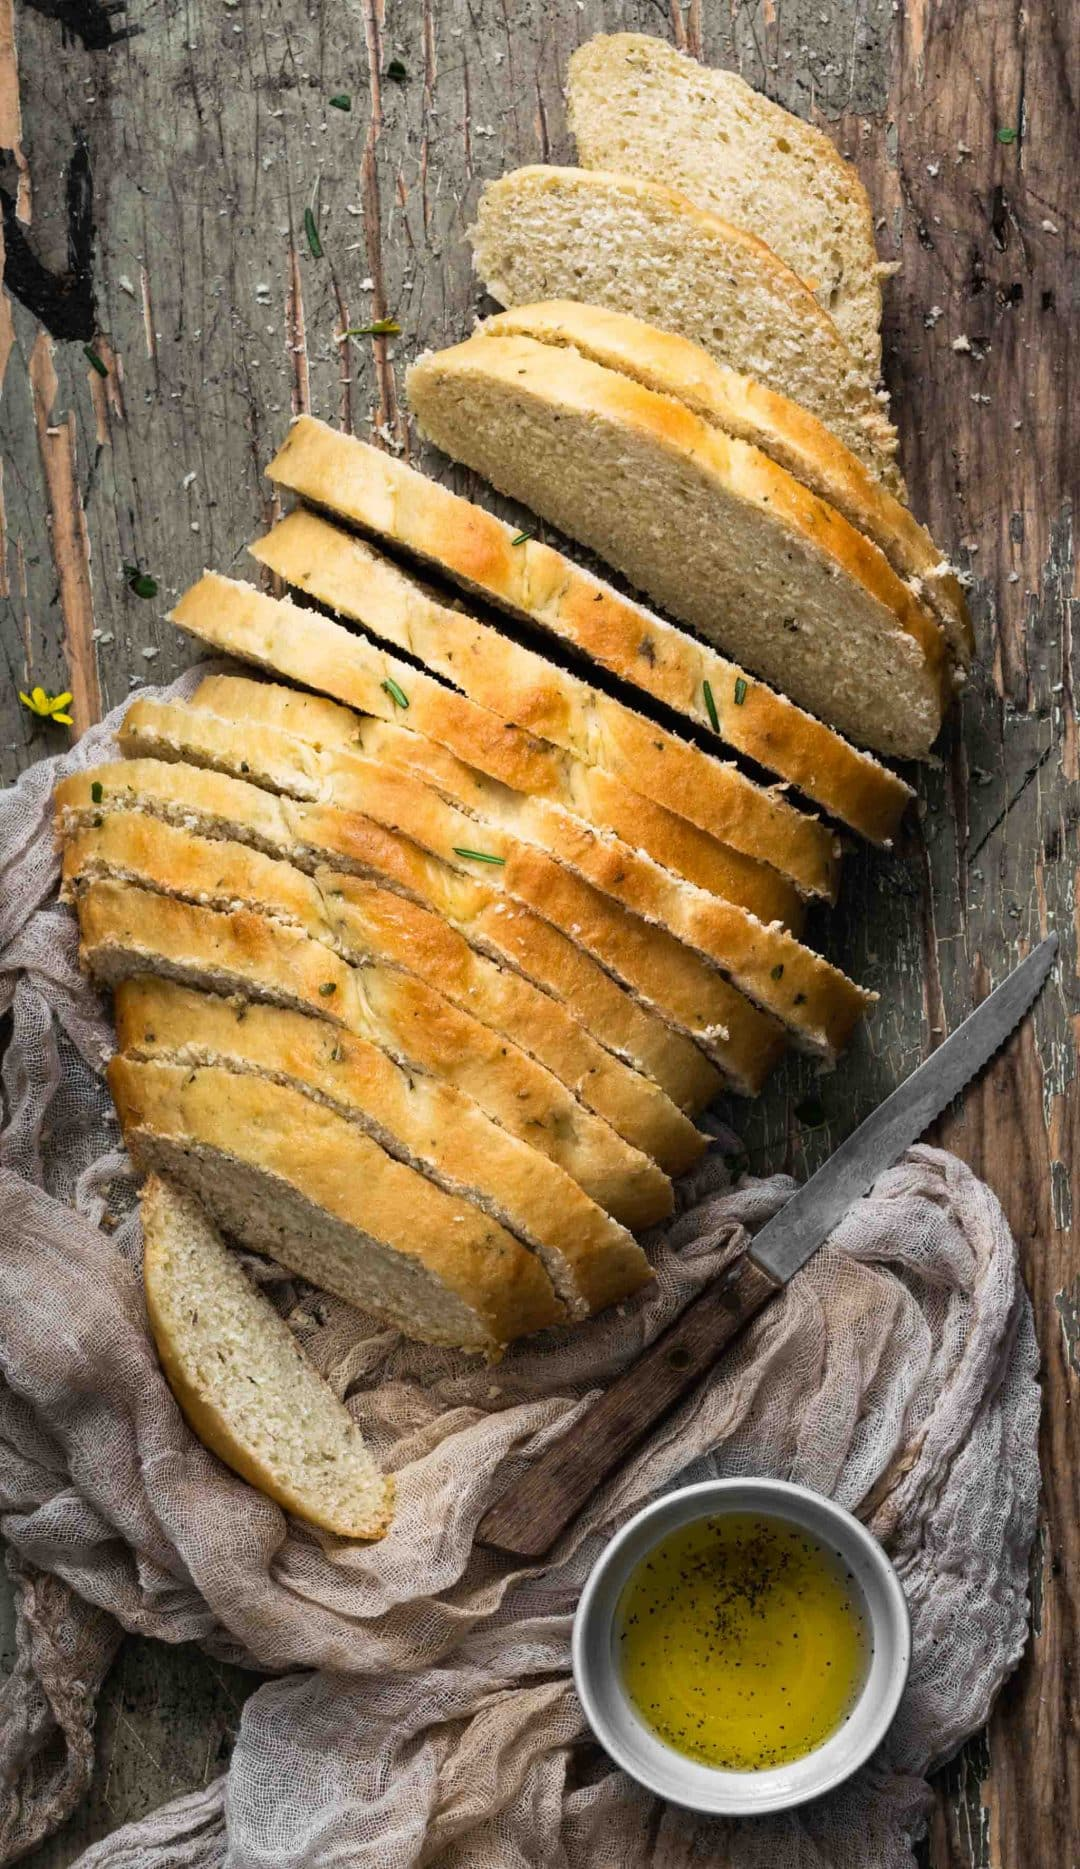 Sliced bread loaf  sprinkled with fresh rosemary on a wooden board.